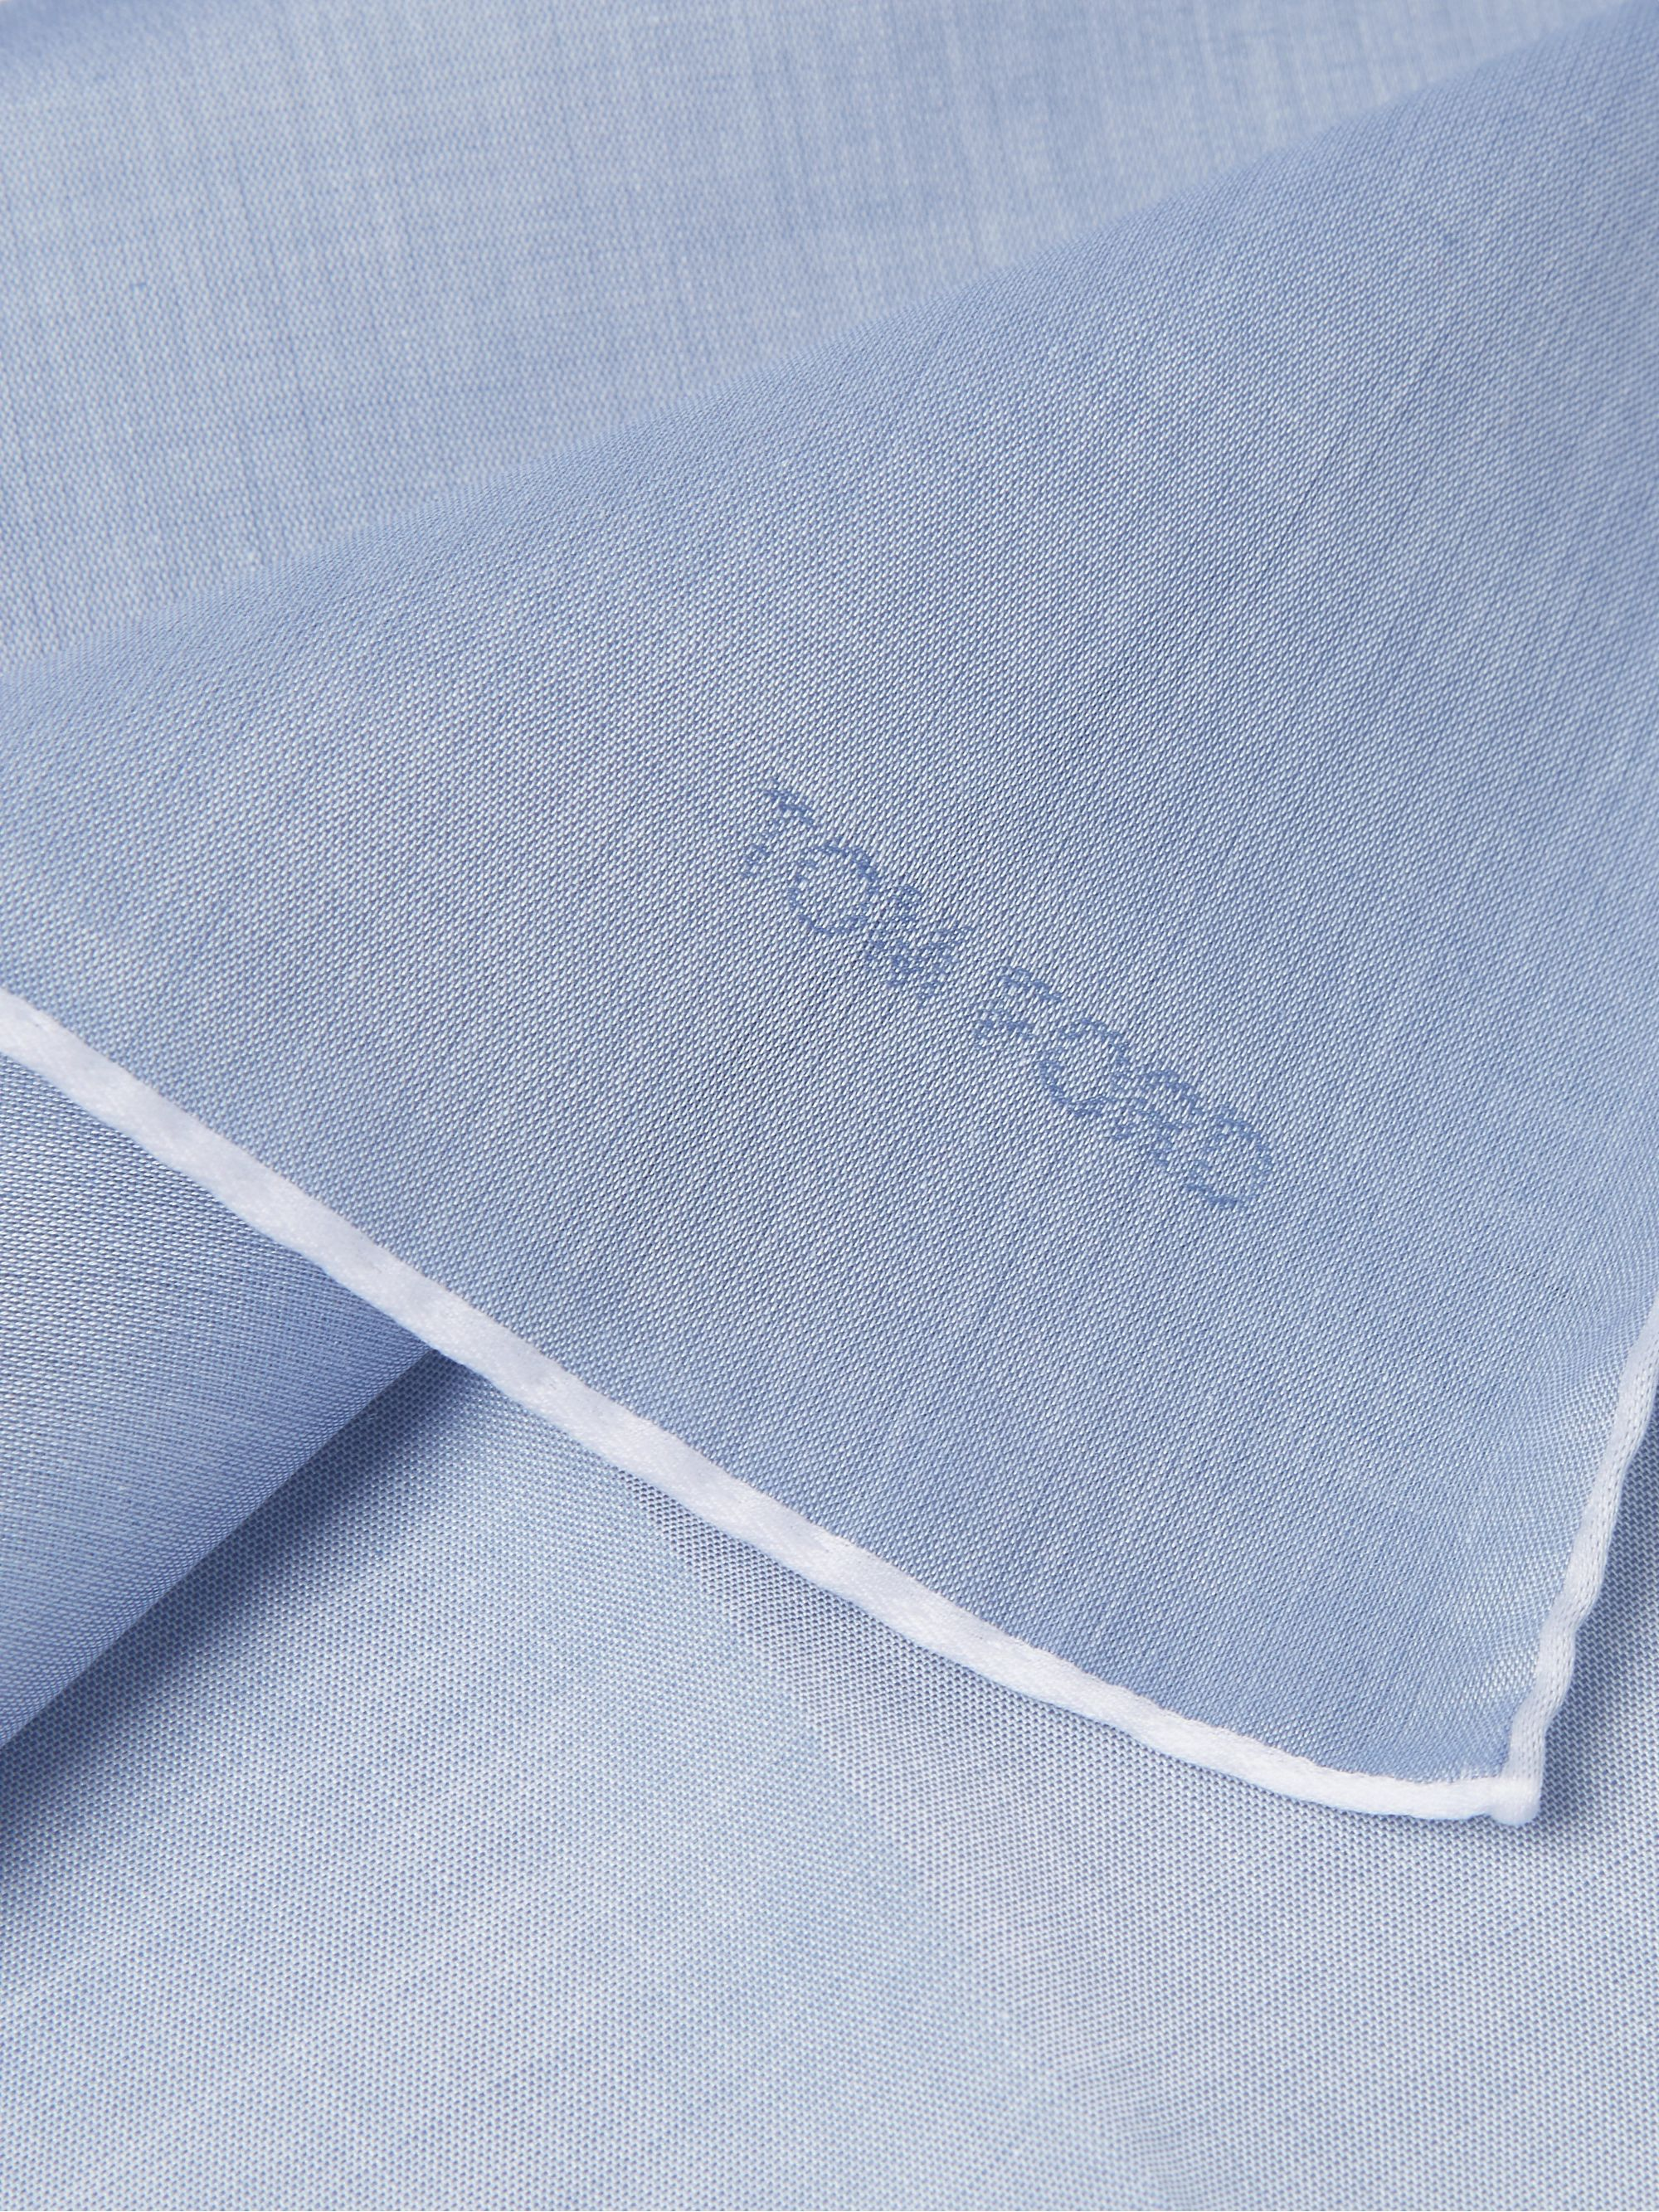 TOM FORD Cotton Pocket Square